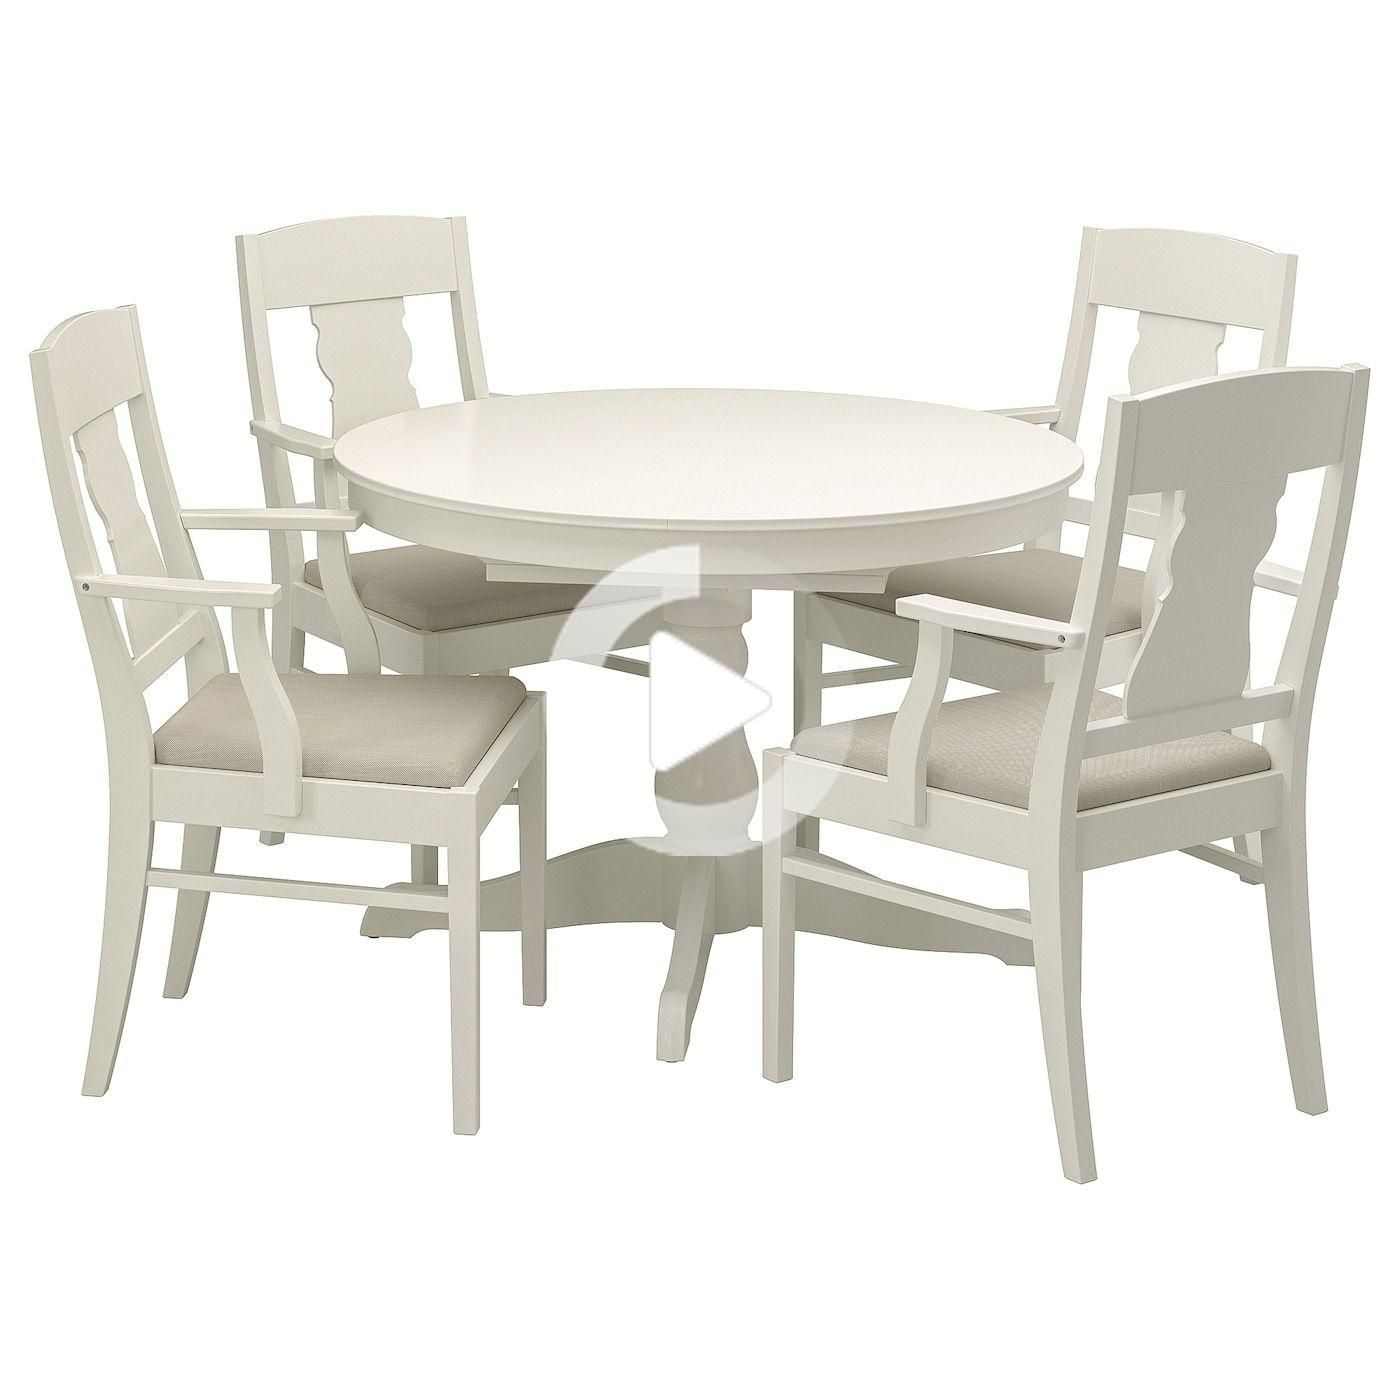 Ikea Ingatorp Table Et 4 Chaises Table A Rallonge Chaises Blanches Ikea